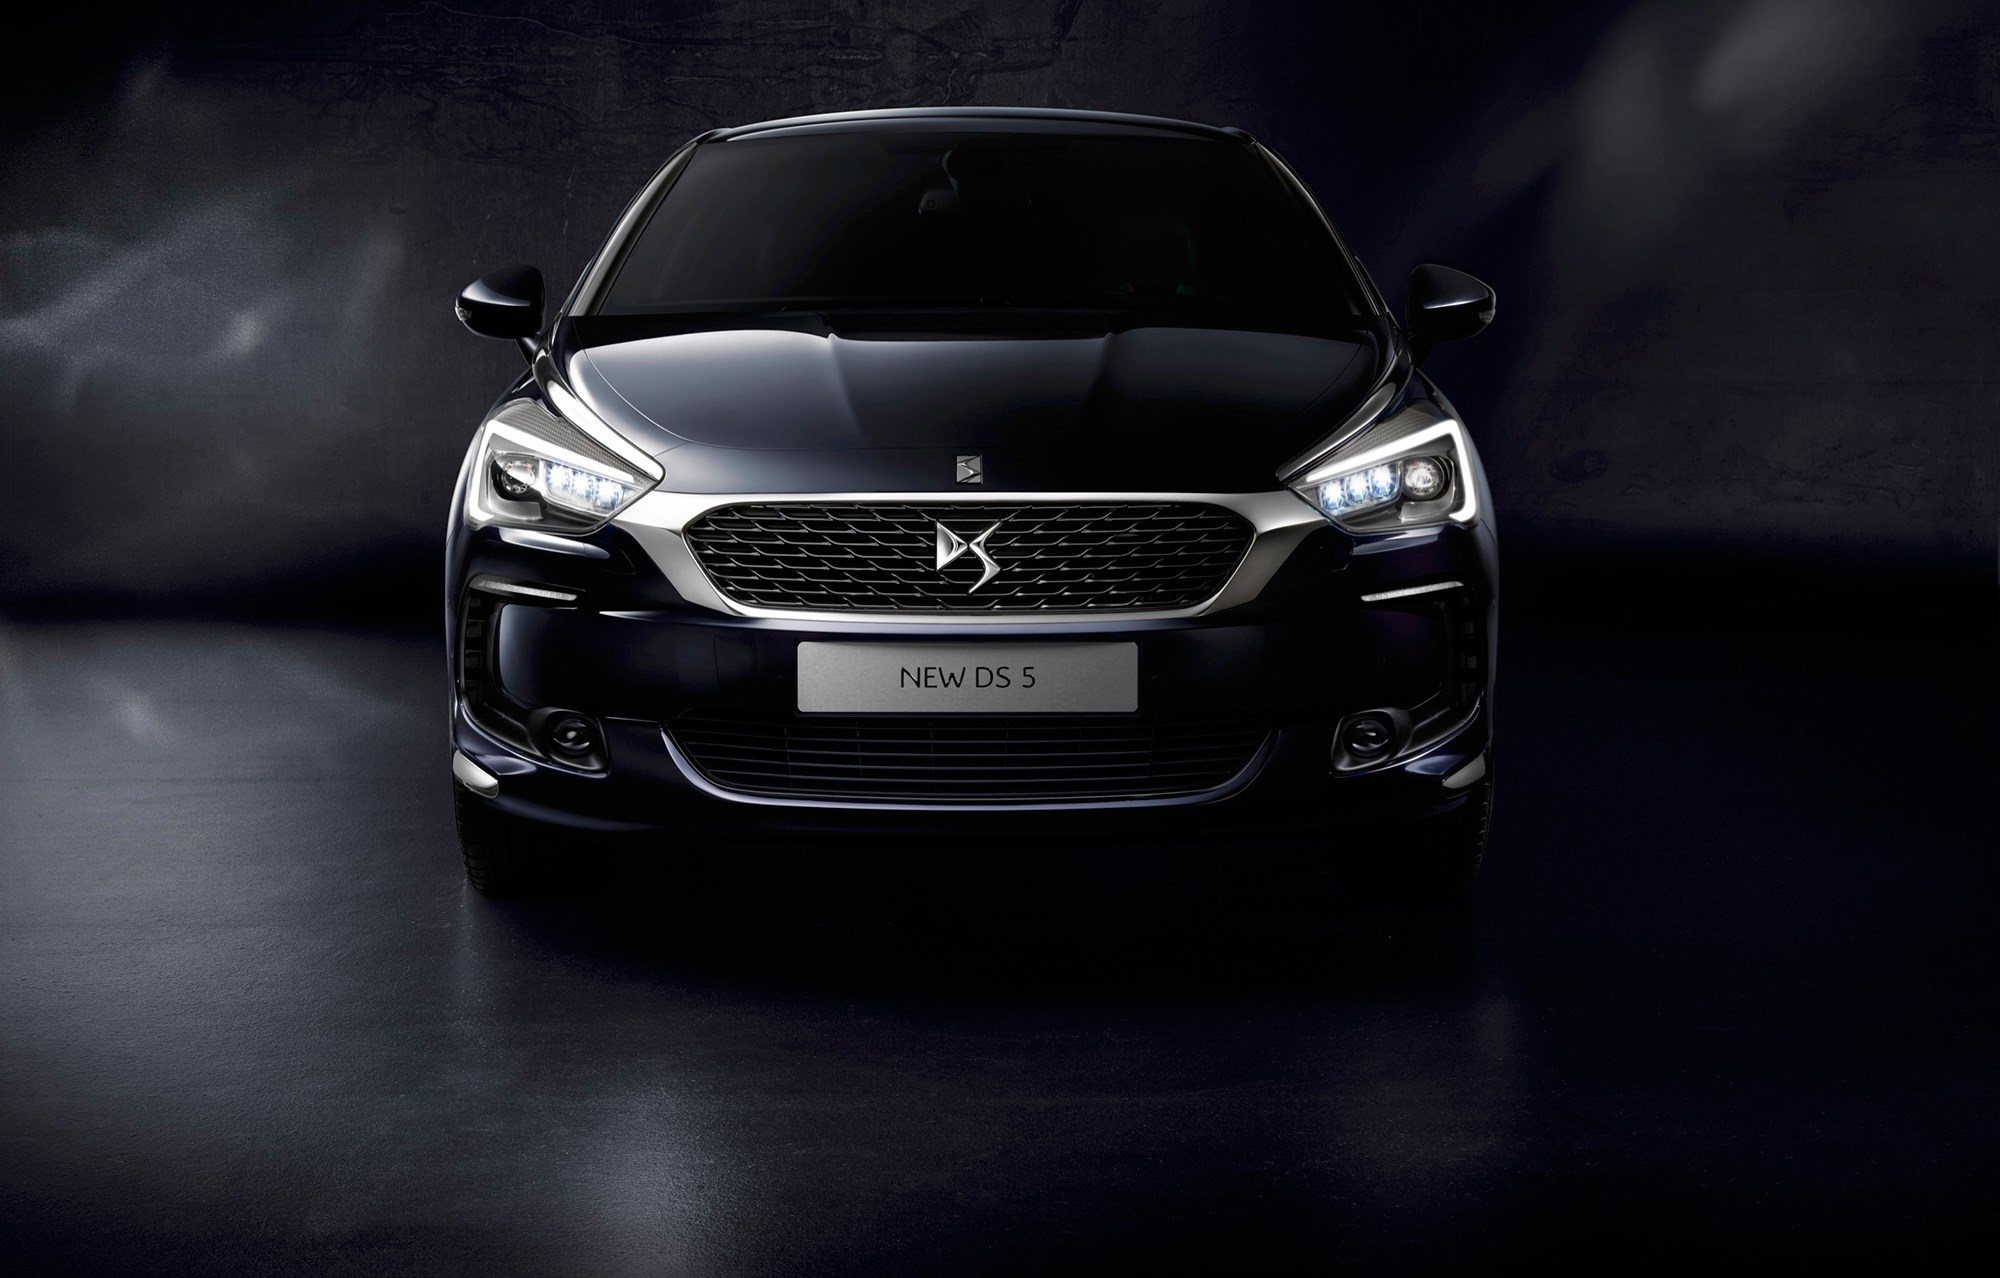 the motoring world ireland the new ds5 is now on sale with better tech improved looks and. Black Bedroom Furniture Sets. Home Design Ideas